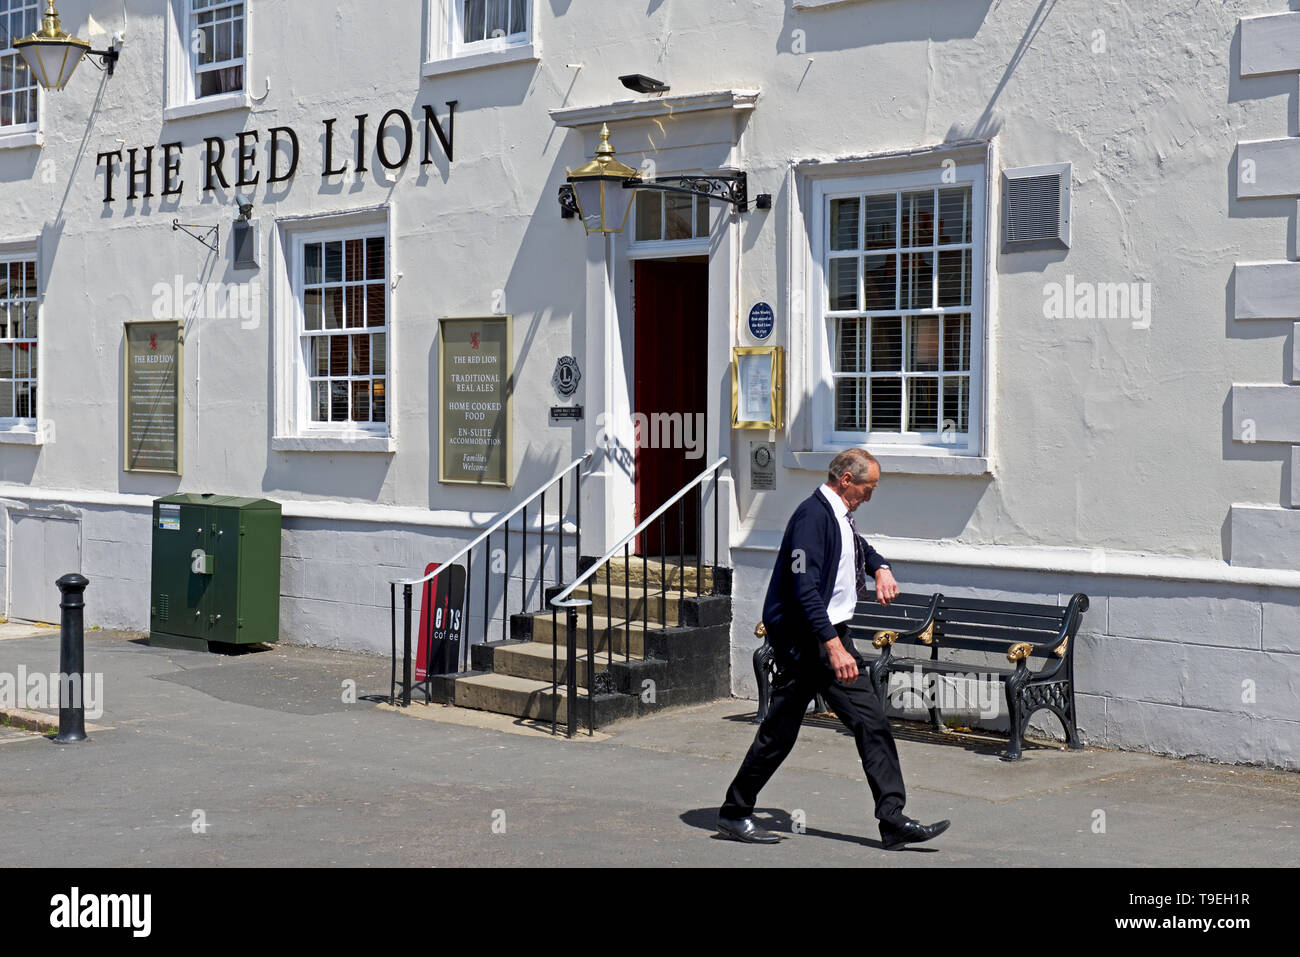 The Red Lion, Epworth,North Lincolnshire, England UK - Stock Image